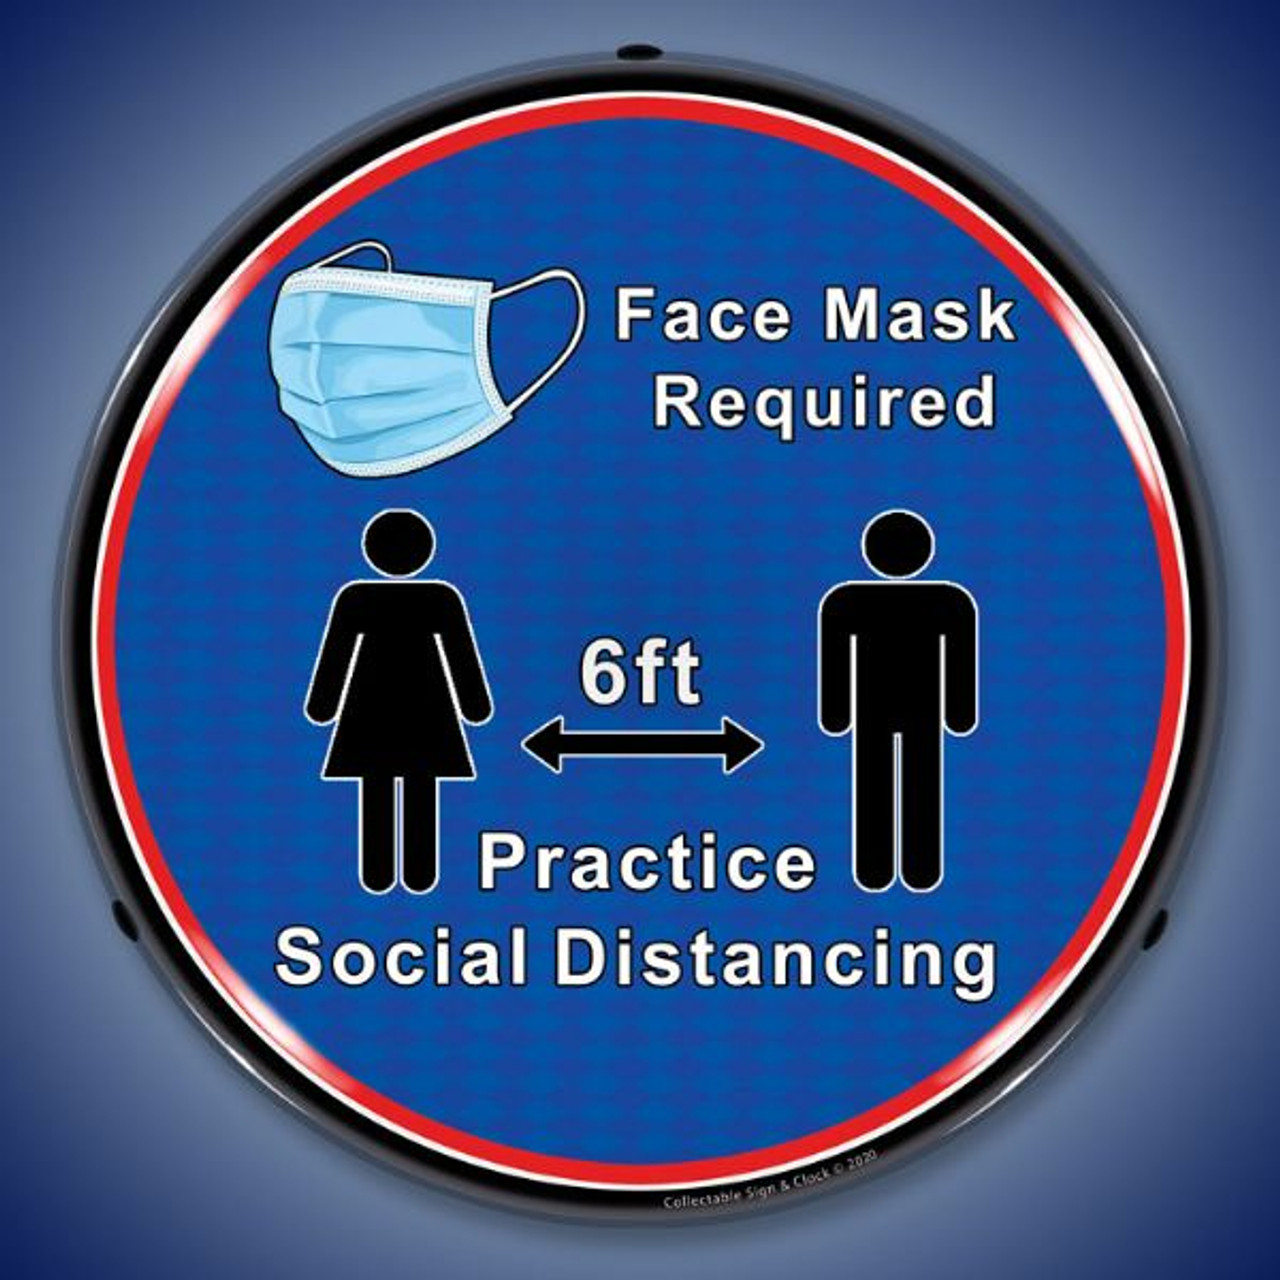 Mask and Social Distance LED Lighted Business Sign 14 x 14 Inches